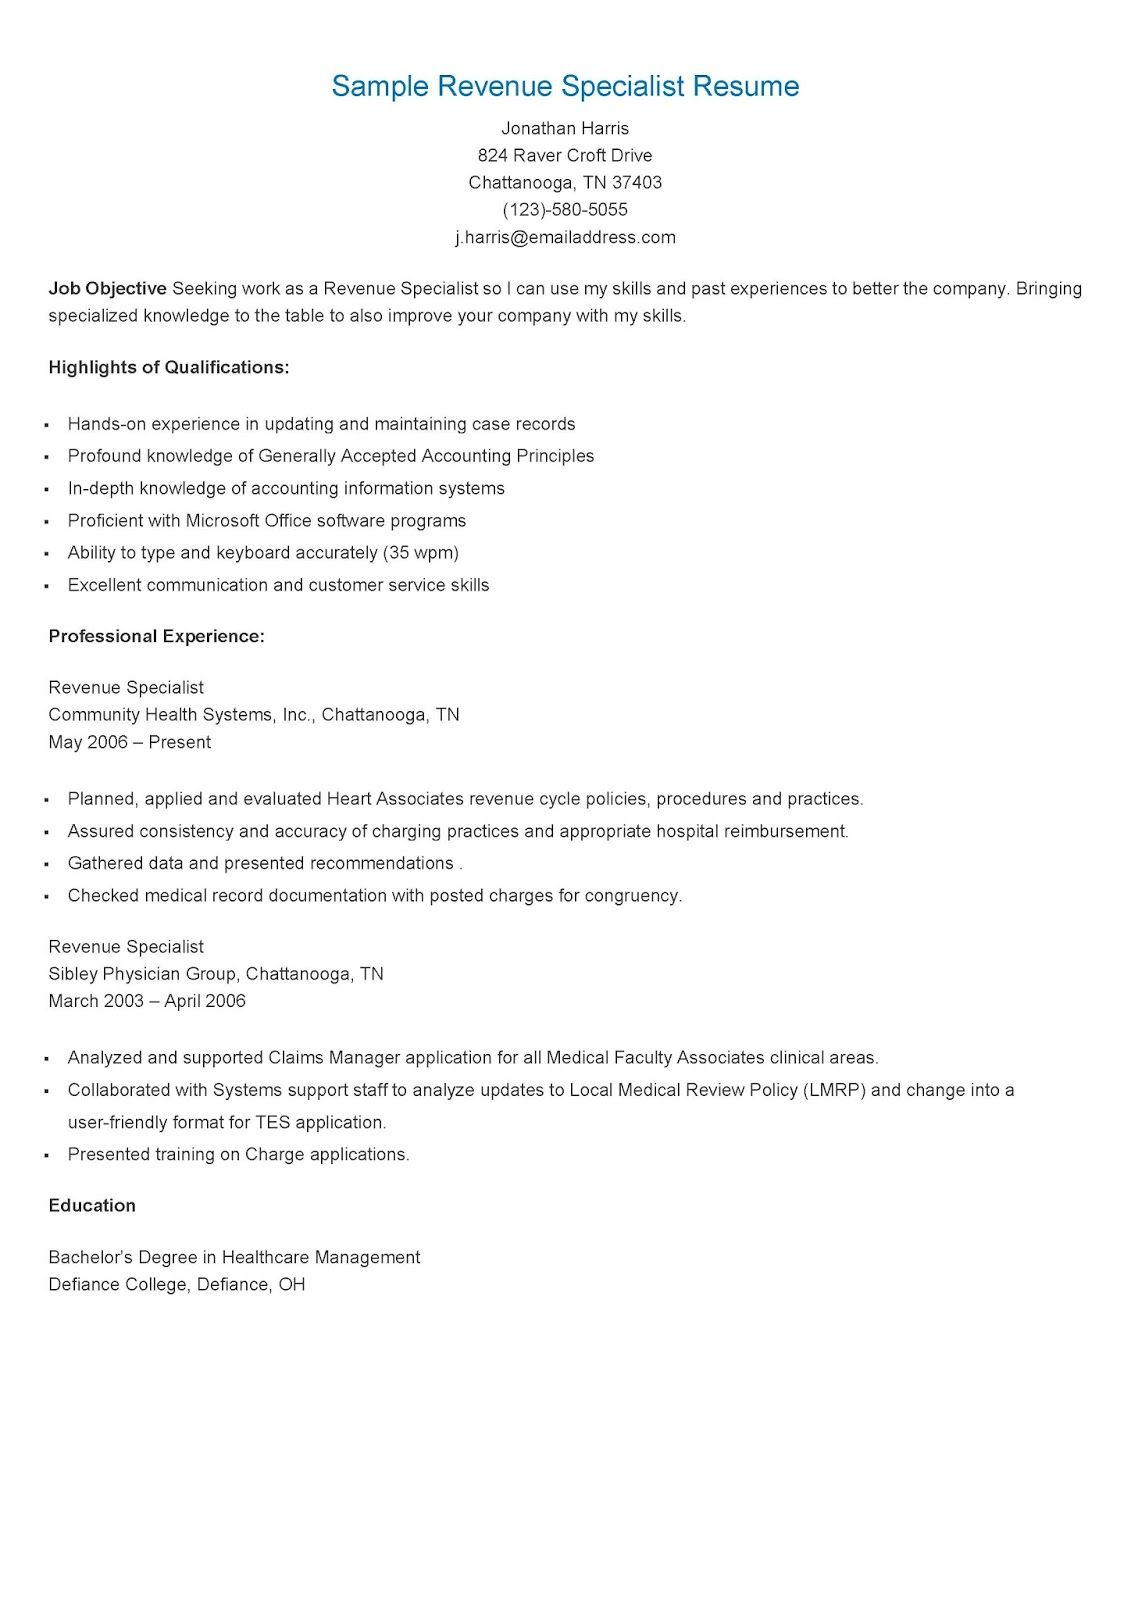 sample revenue specialist resume resame pinterest resume